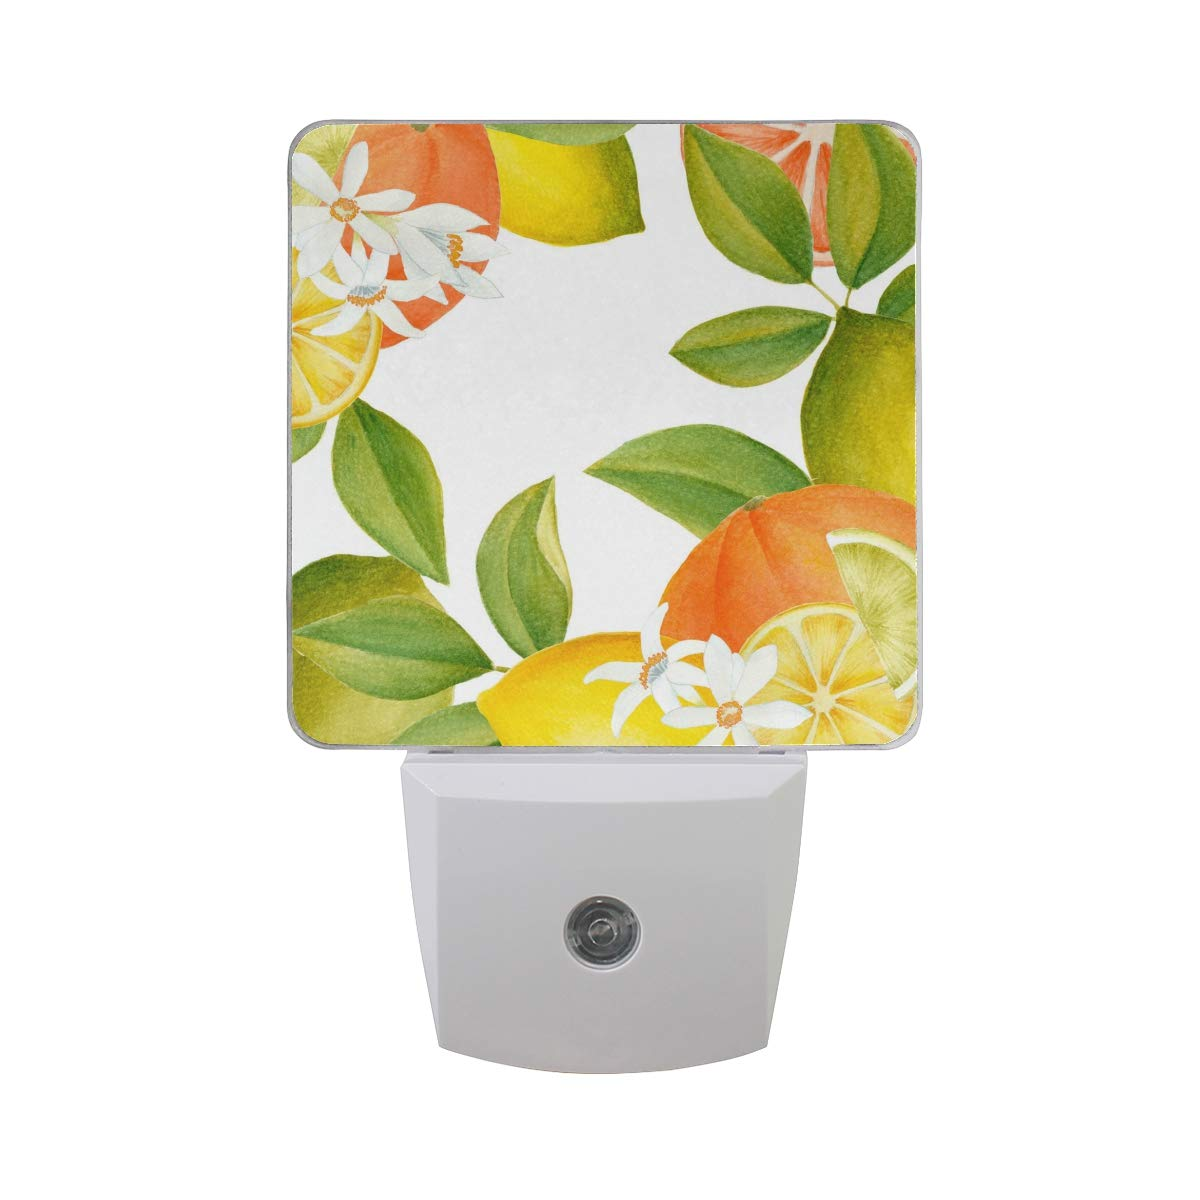 OuLian Night Light Watercolor Citrus Clipart Led Light Lamp for Hallway, Kitchen, Bathroom, Bedroom, Stairs, DaylightWhite, Bedroom, Compact